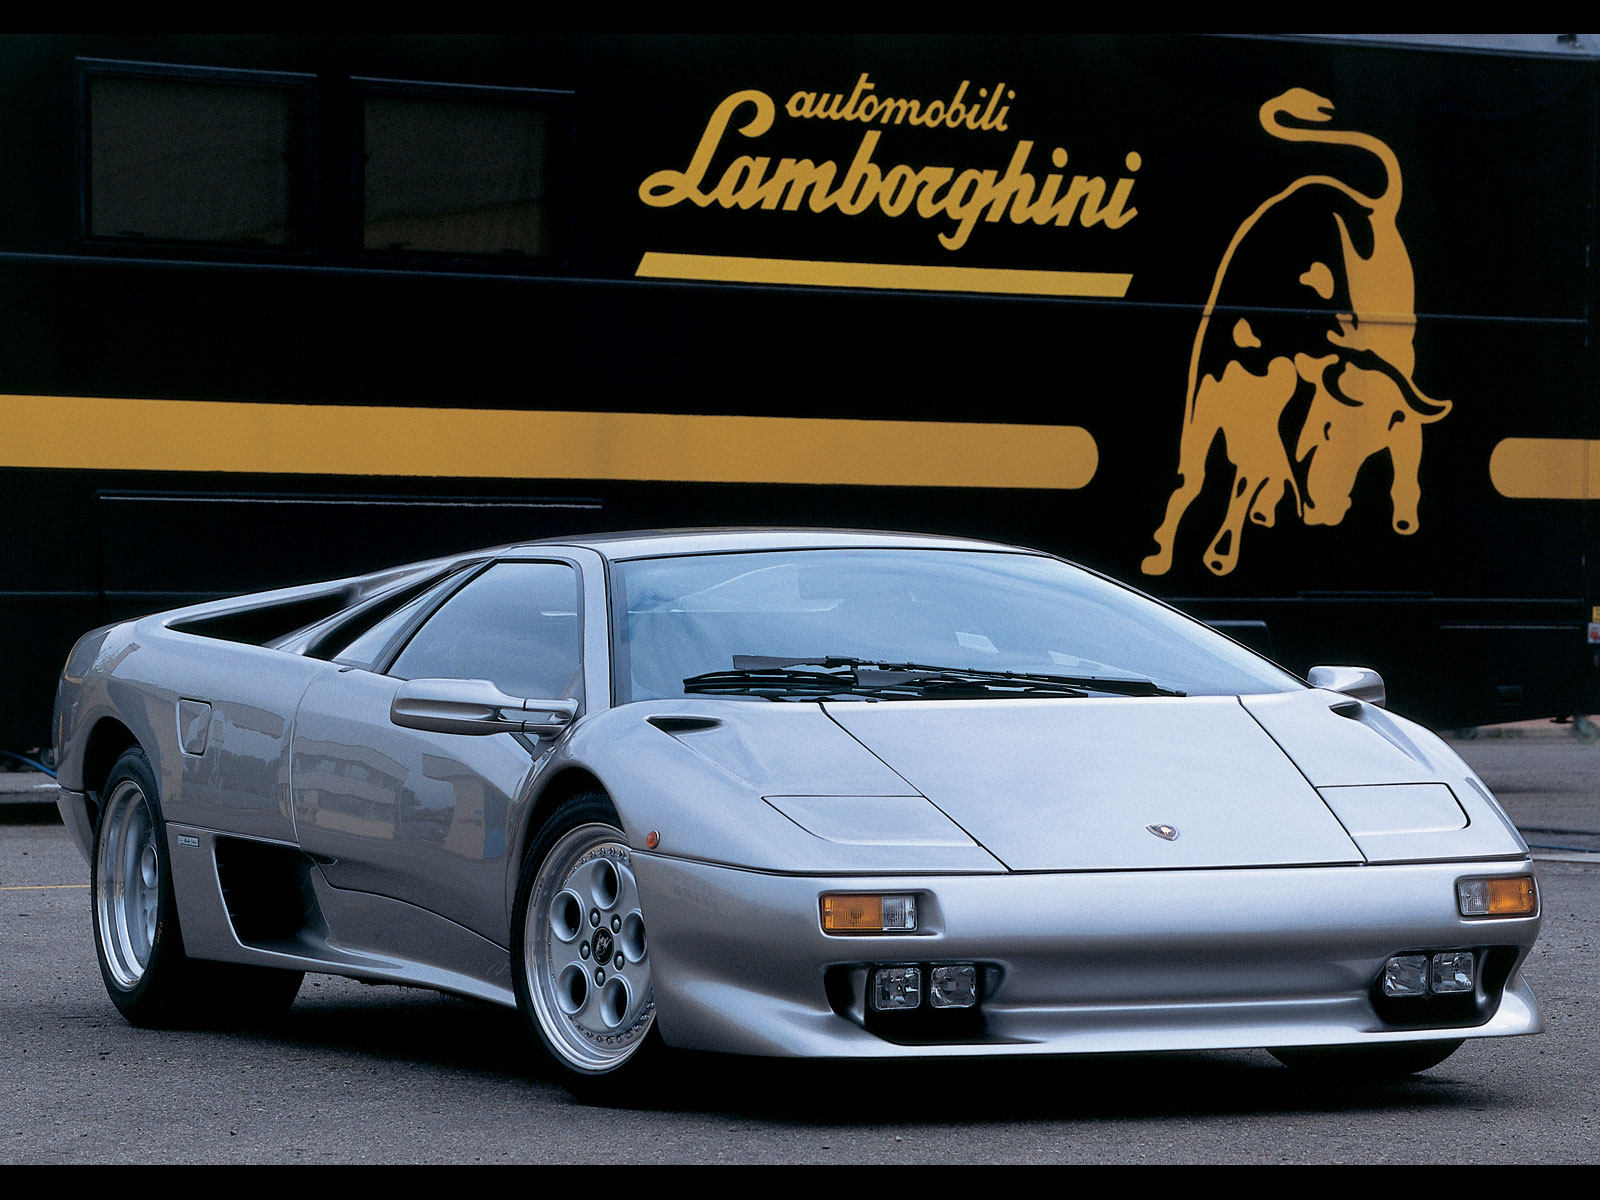 ... lamborghini-diablo-coupe-2-doors-1999-model-exterior- ... & lamborghini-diablo-coupe-2-doors-1999-model-exterior-photos-0.jpg